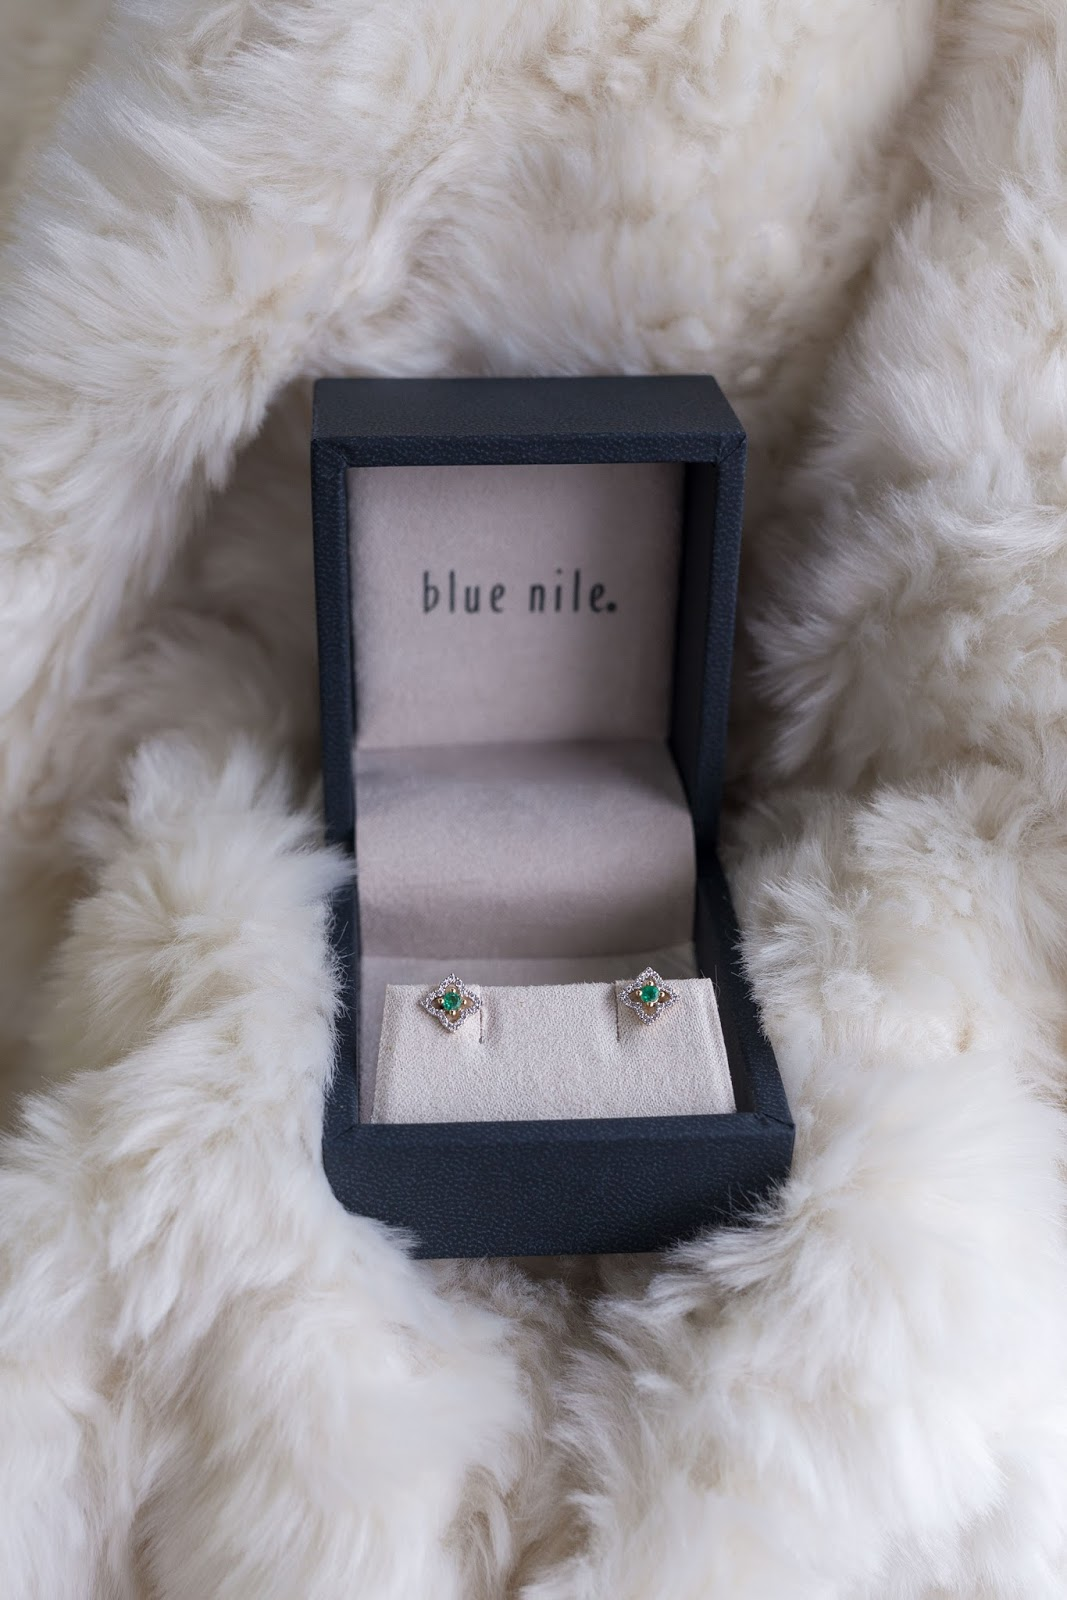 Gifting for the Holidays: Sparkle with Blue Nile Jewelry